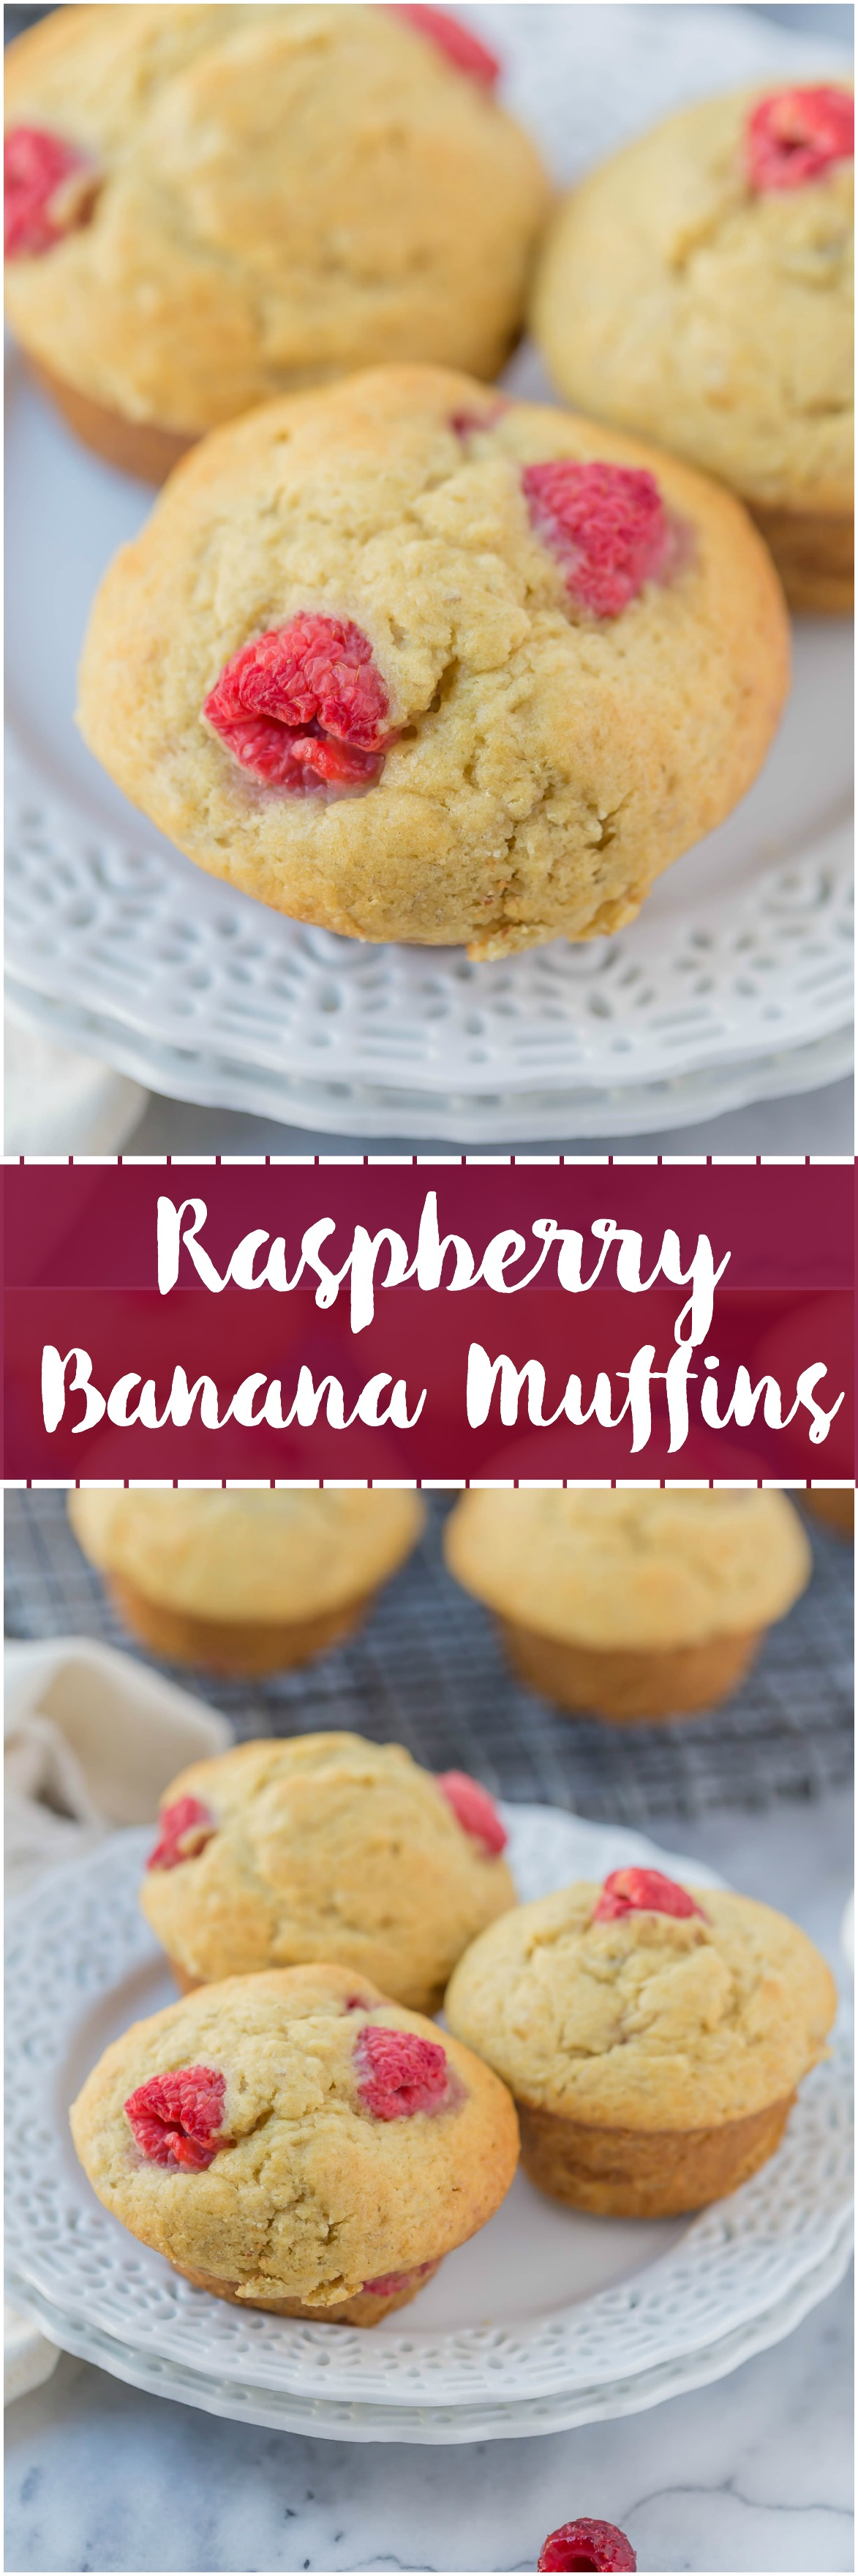 Raspberry Banana Muffins ~ Do you have some ripe bananas and fresh raspberries sitting around? Then you need to make these Raspberry Banana Muffins. Moist and all the right flavors.